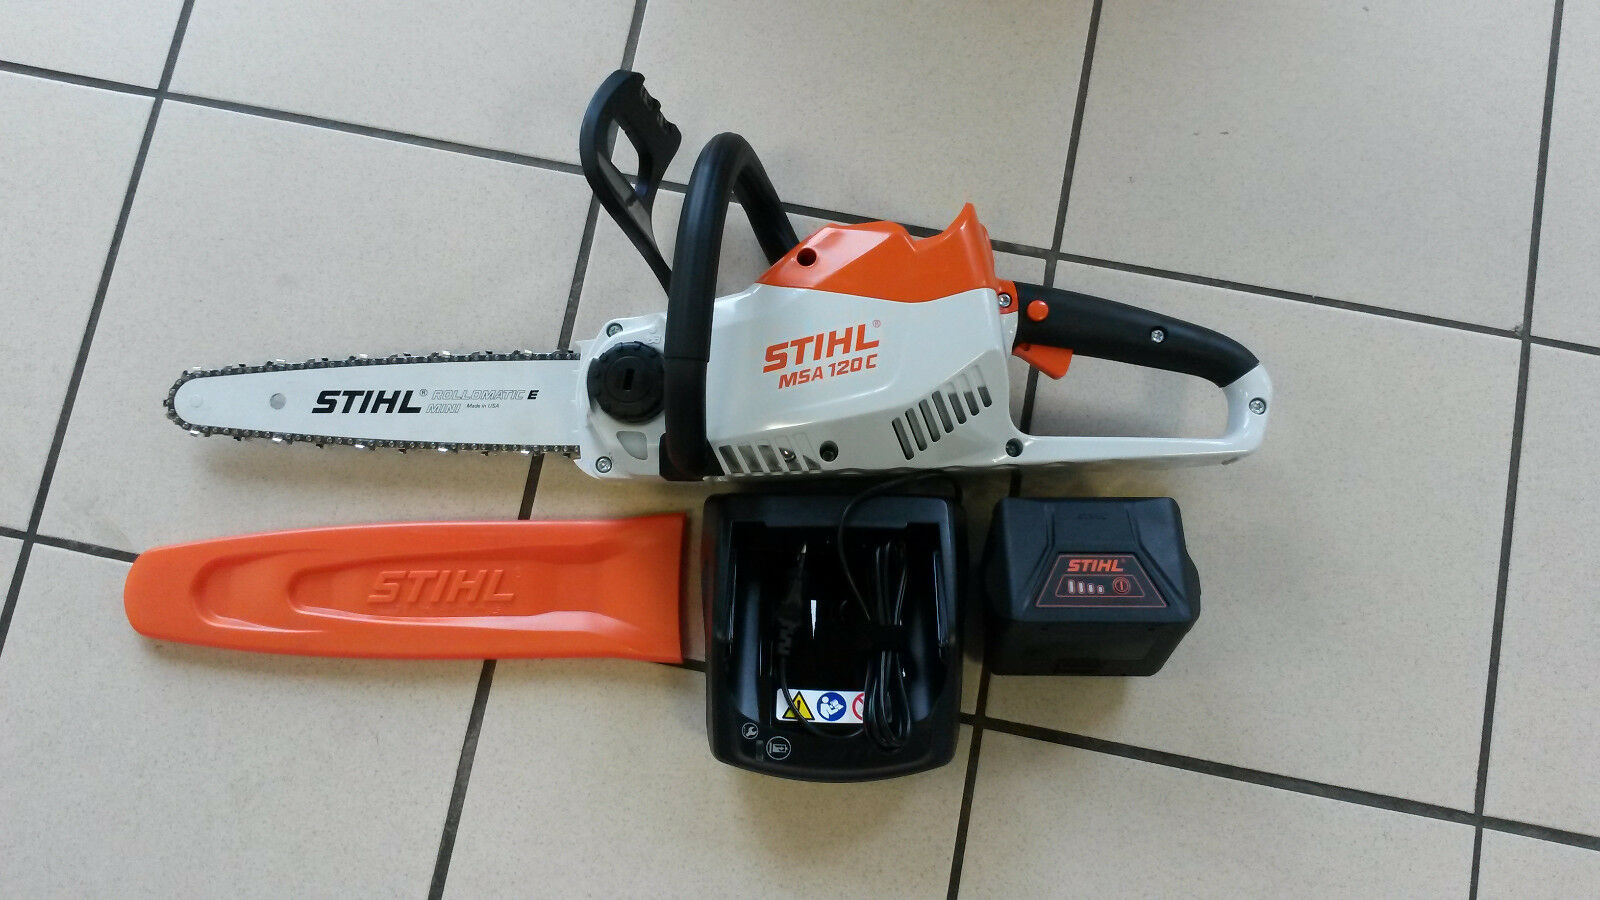 stihl msa 120 c bq akku motors ge s ge kettens ge inkl akku u ladeger t eur 295 00 picclick de. Black Bedroom Furniture Sets. Home Design Ideas